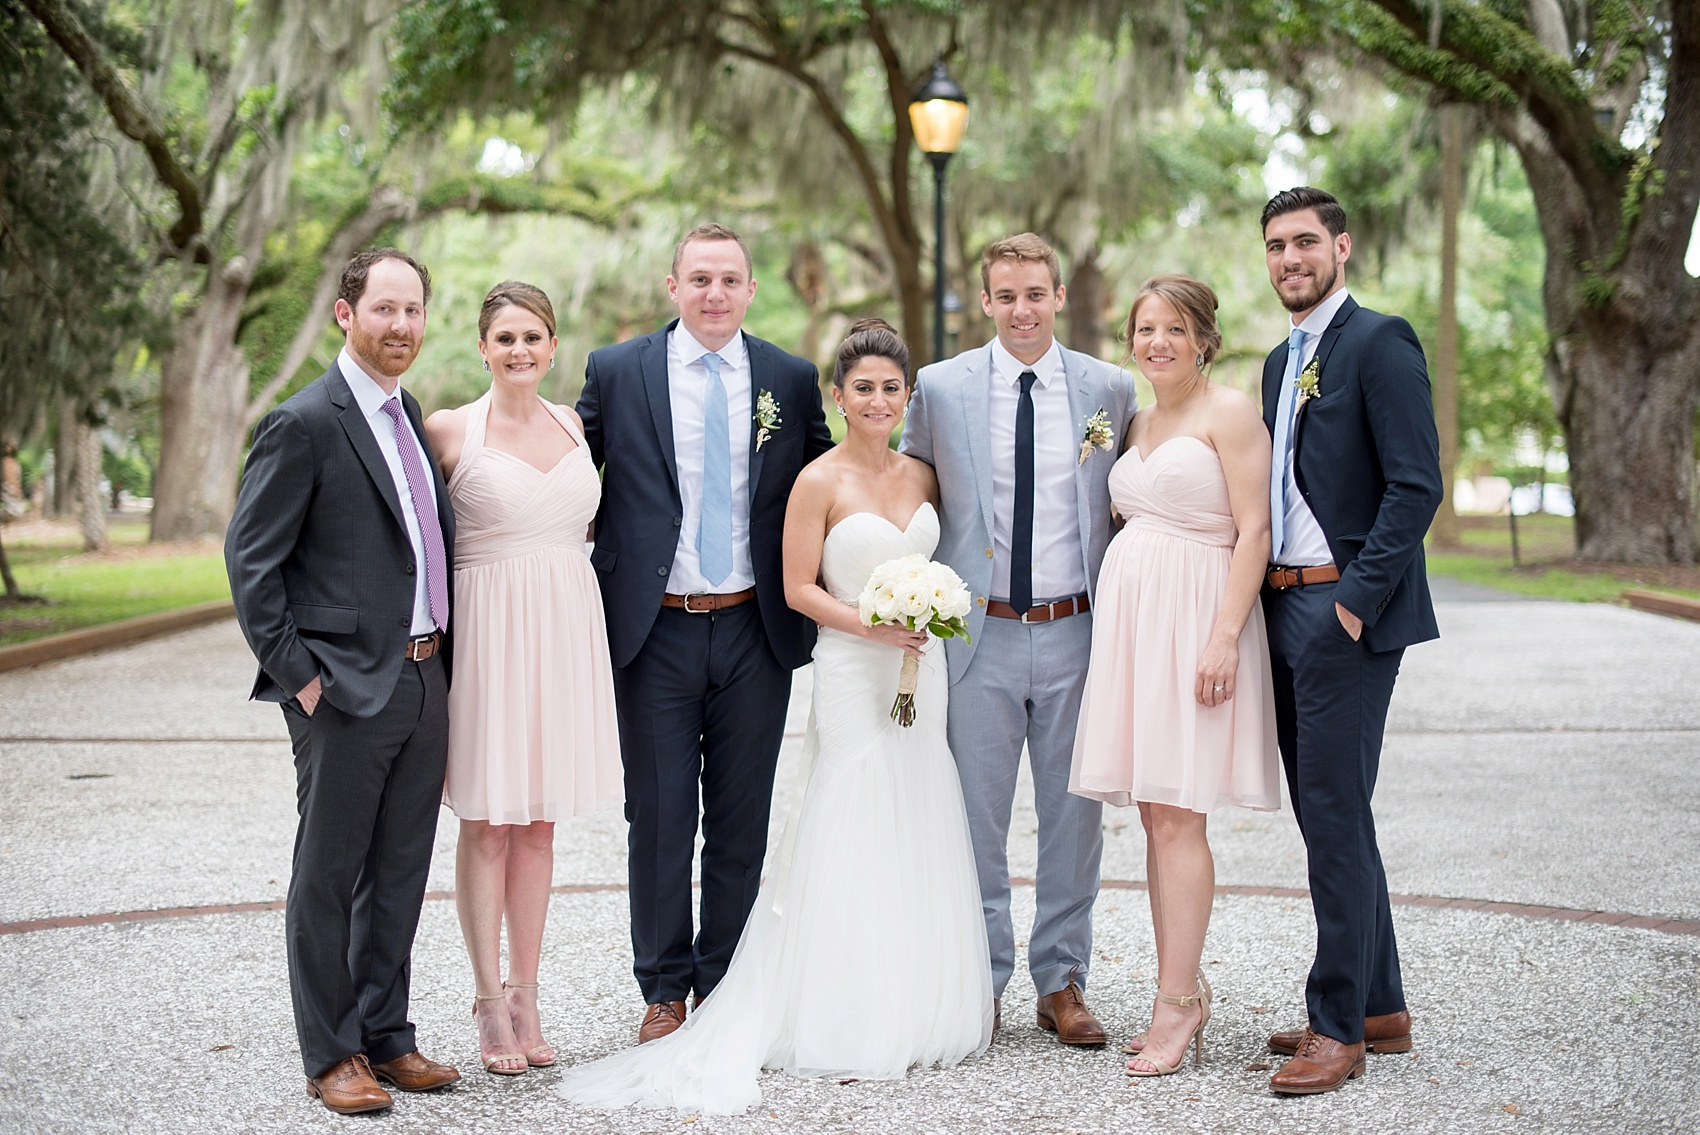 Sibling wedding photo amidst Spanish Moss for a Haig Point wedding in South Carolina, off the coast of Hilton Head. Photos by Mikkel Paige Photography.